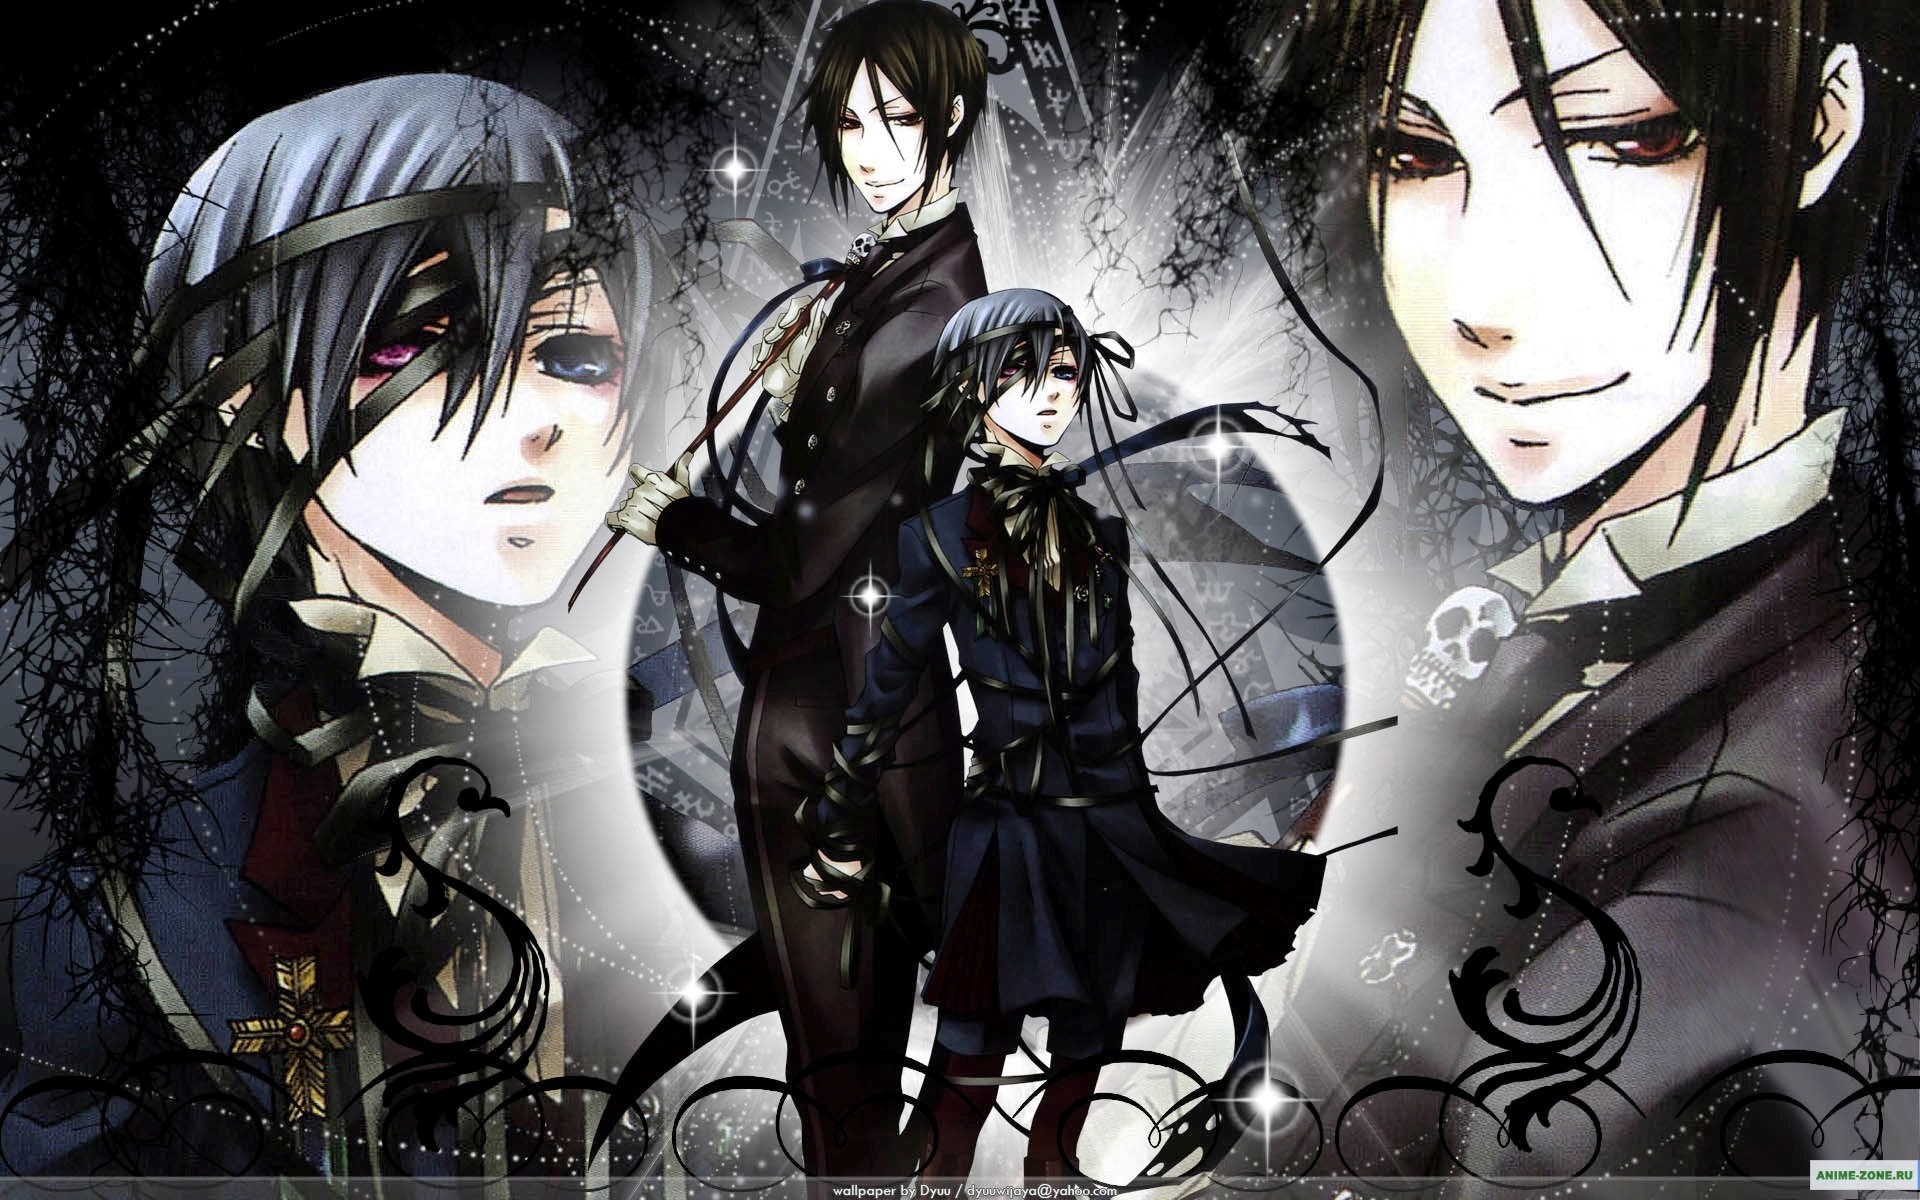 1920x1200 Black Butler wallpapers and images - wallpapers, pictures, photos